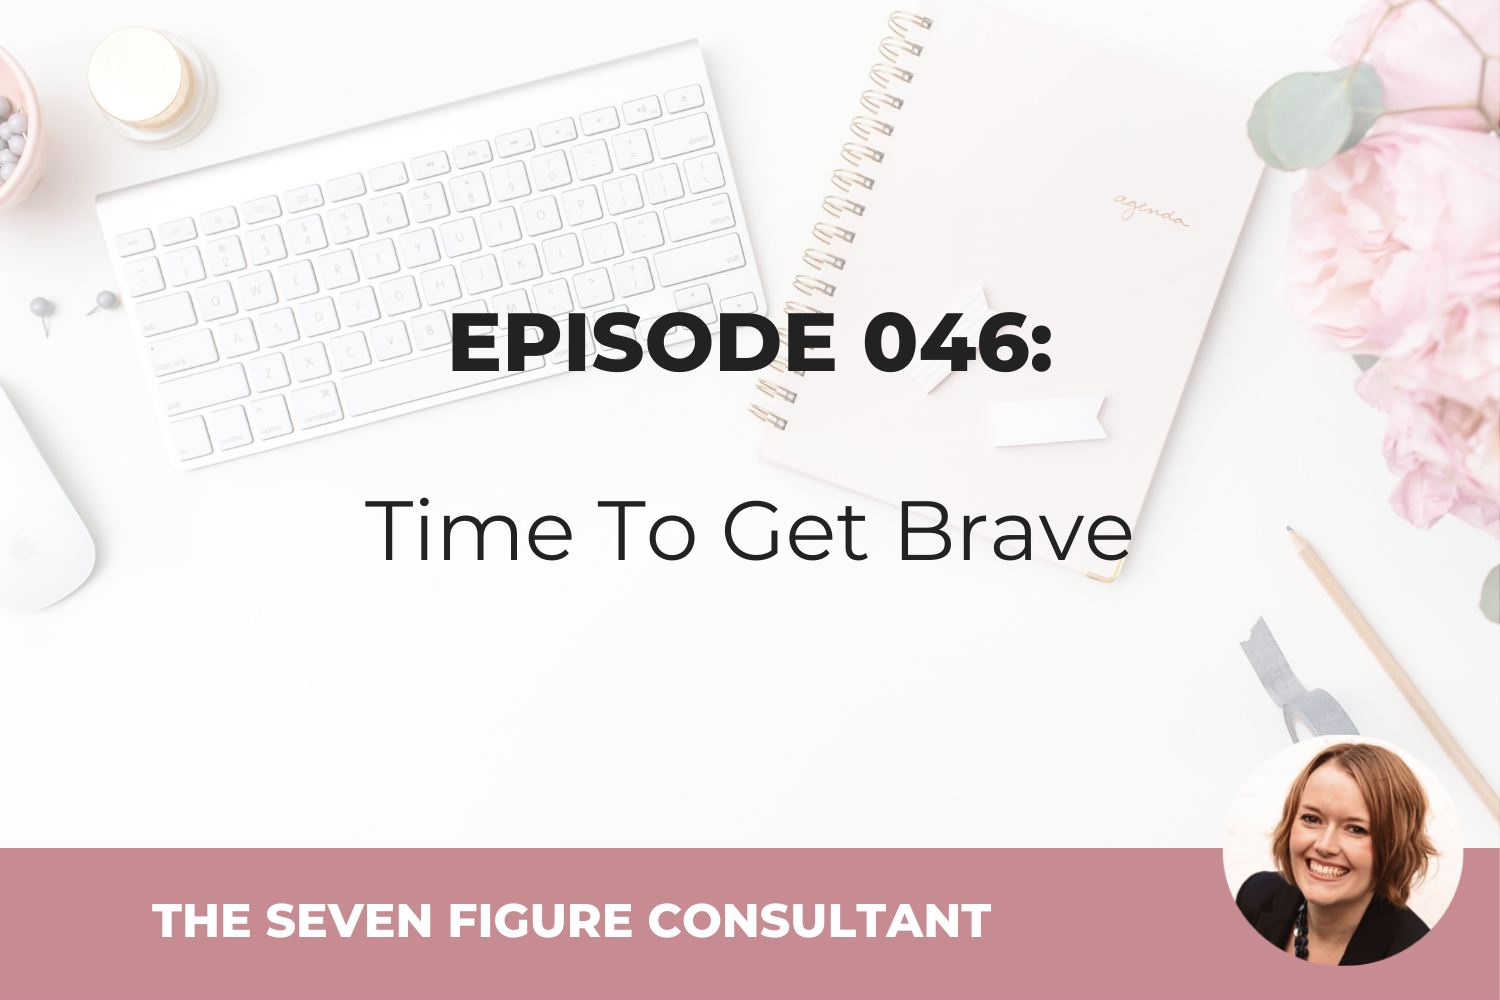 Episode 046: Time To Get Brave